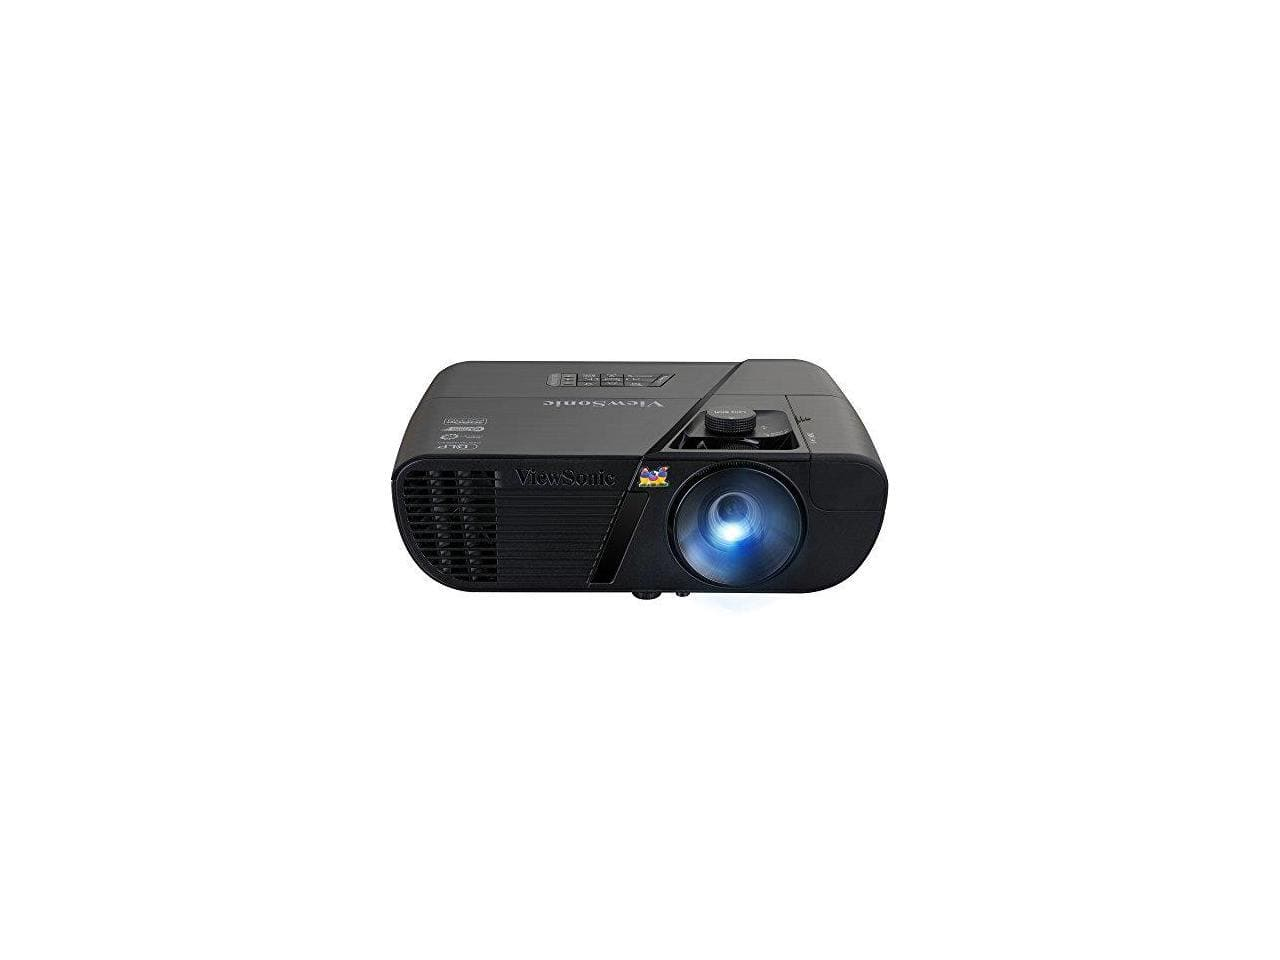 ViewSonic PRO7827HD 1080p 3D DLP 2200 Lumens Home Theater Projector $449.99 + Free Shipping via Newegg